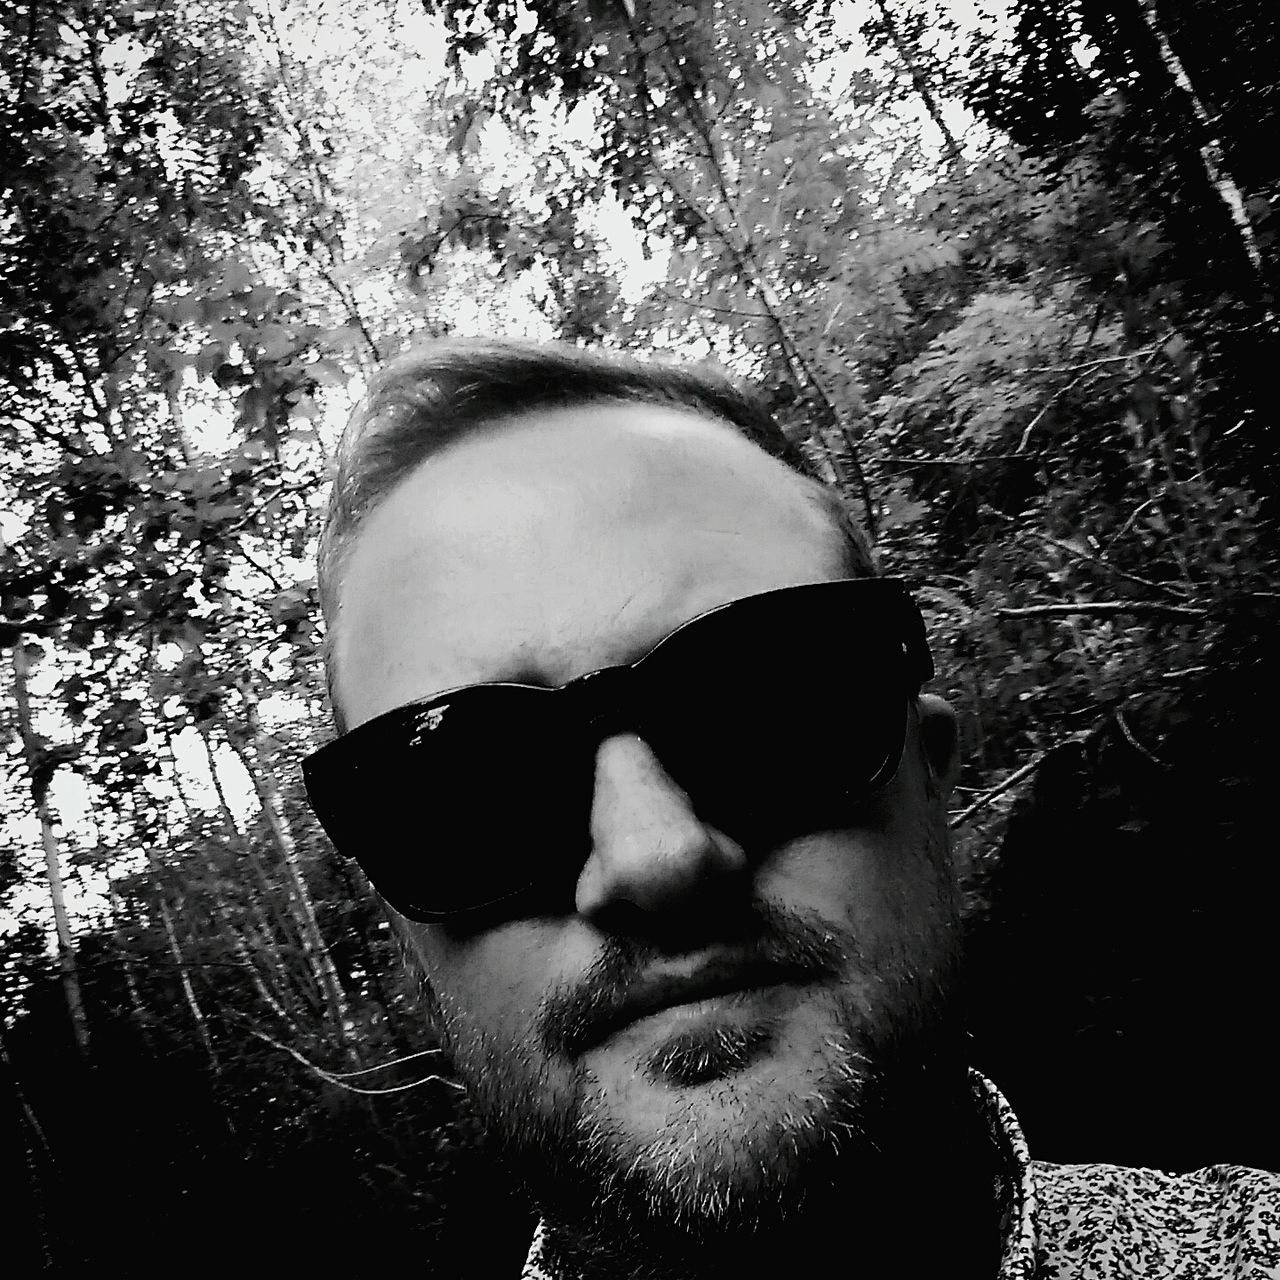 tree, sunglasses, one person, beard, real people, headshot, human face, outdoors, day, nature, close-up, portrait, mammal, people